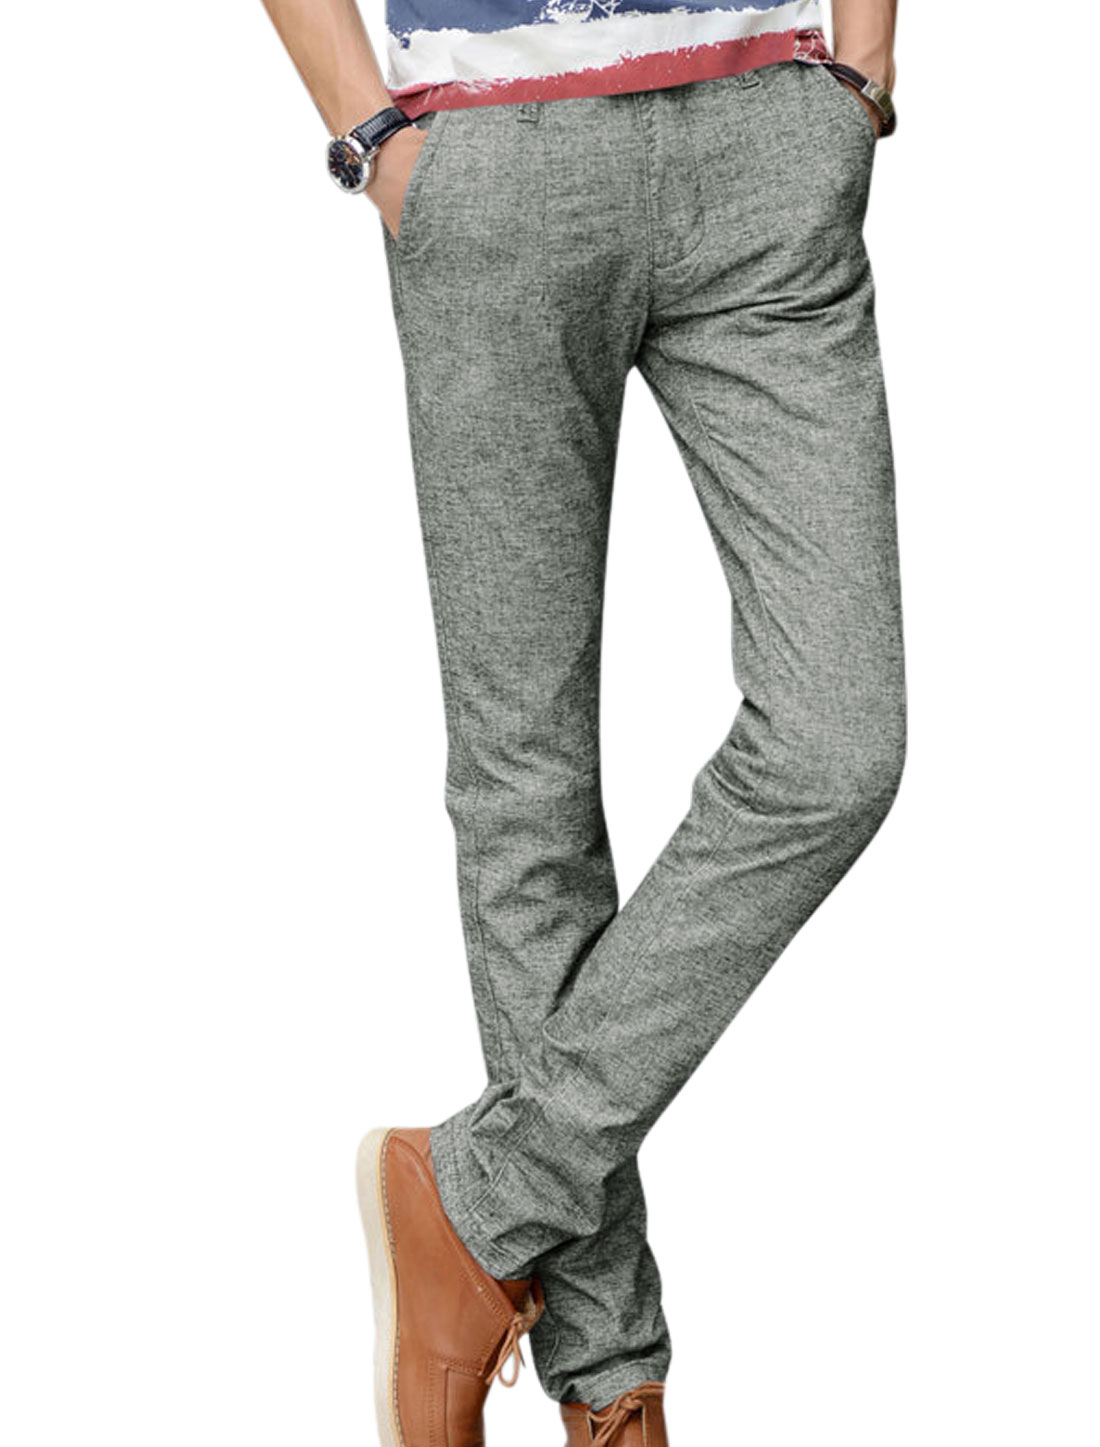 Men Light Cool Gray Mid Rise Zip Fly Belt Loop Button Closure Casual Pants W32